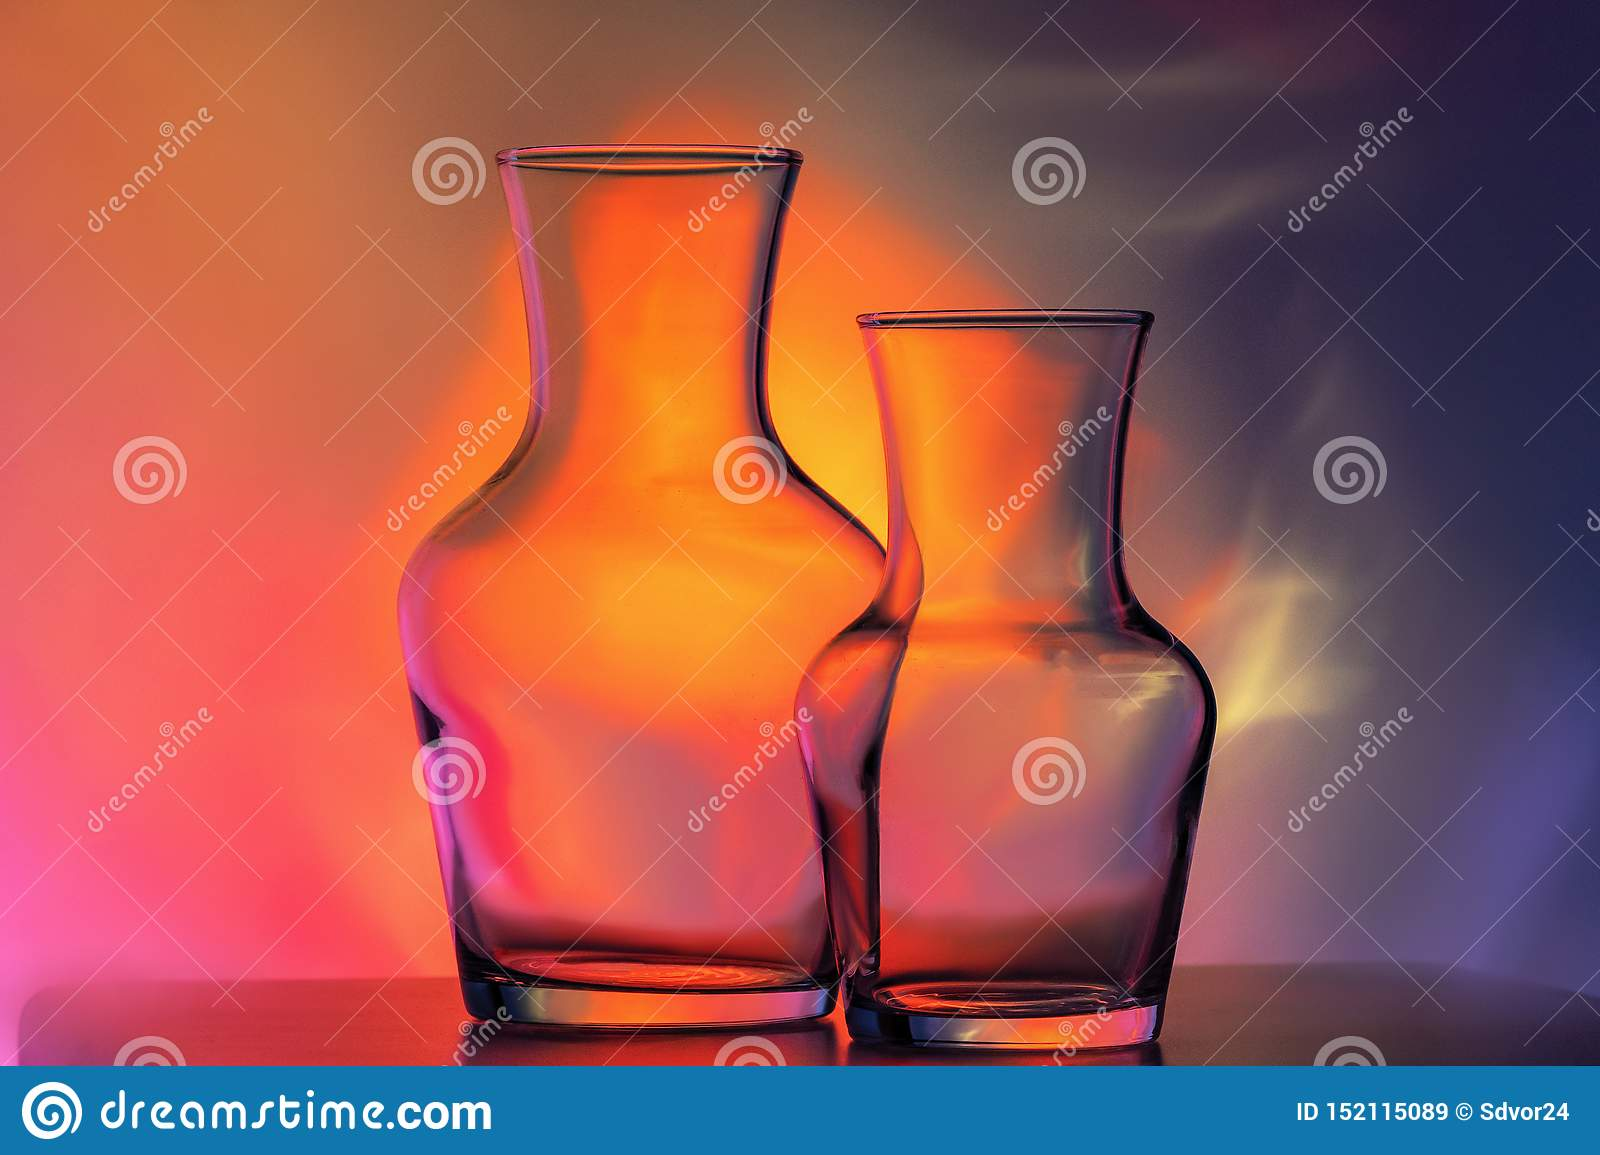 Glass transparent tableware - bottles of different sizes, three pieces on a beautiful multi-colored, yellow, lilac and